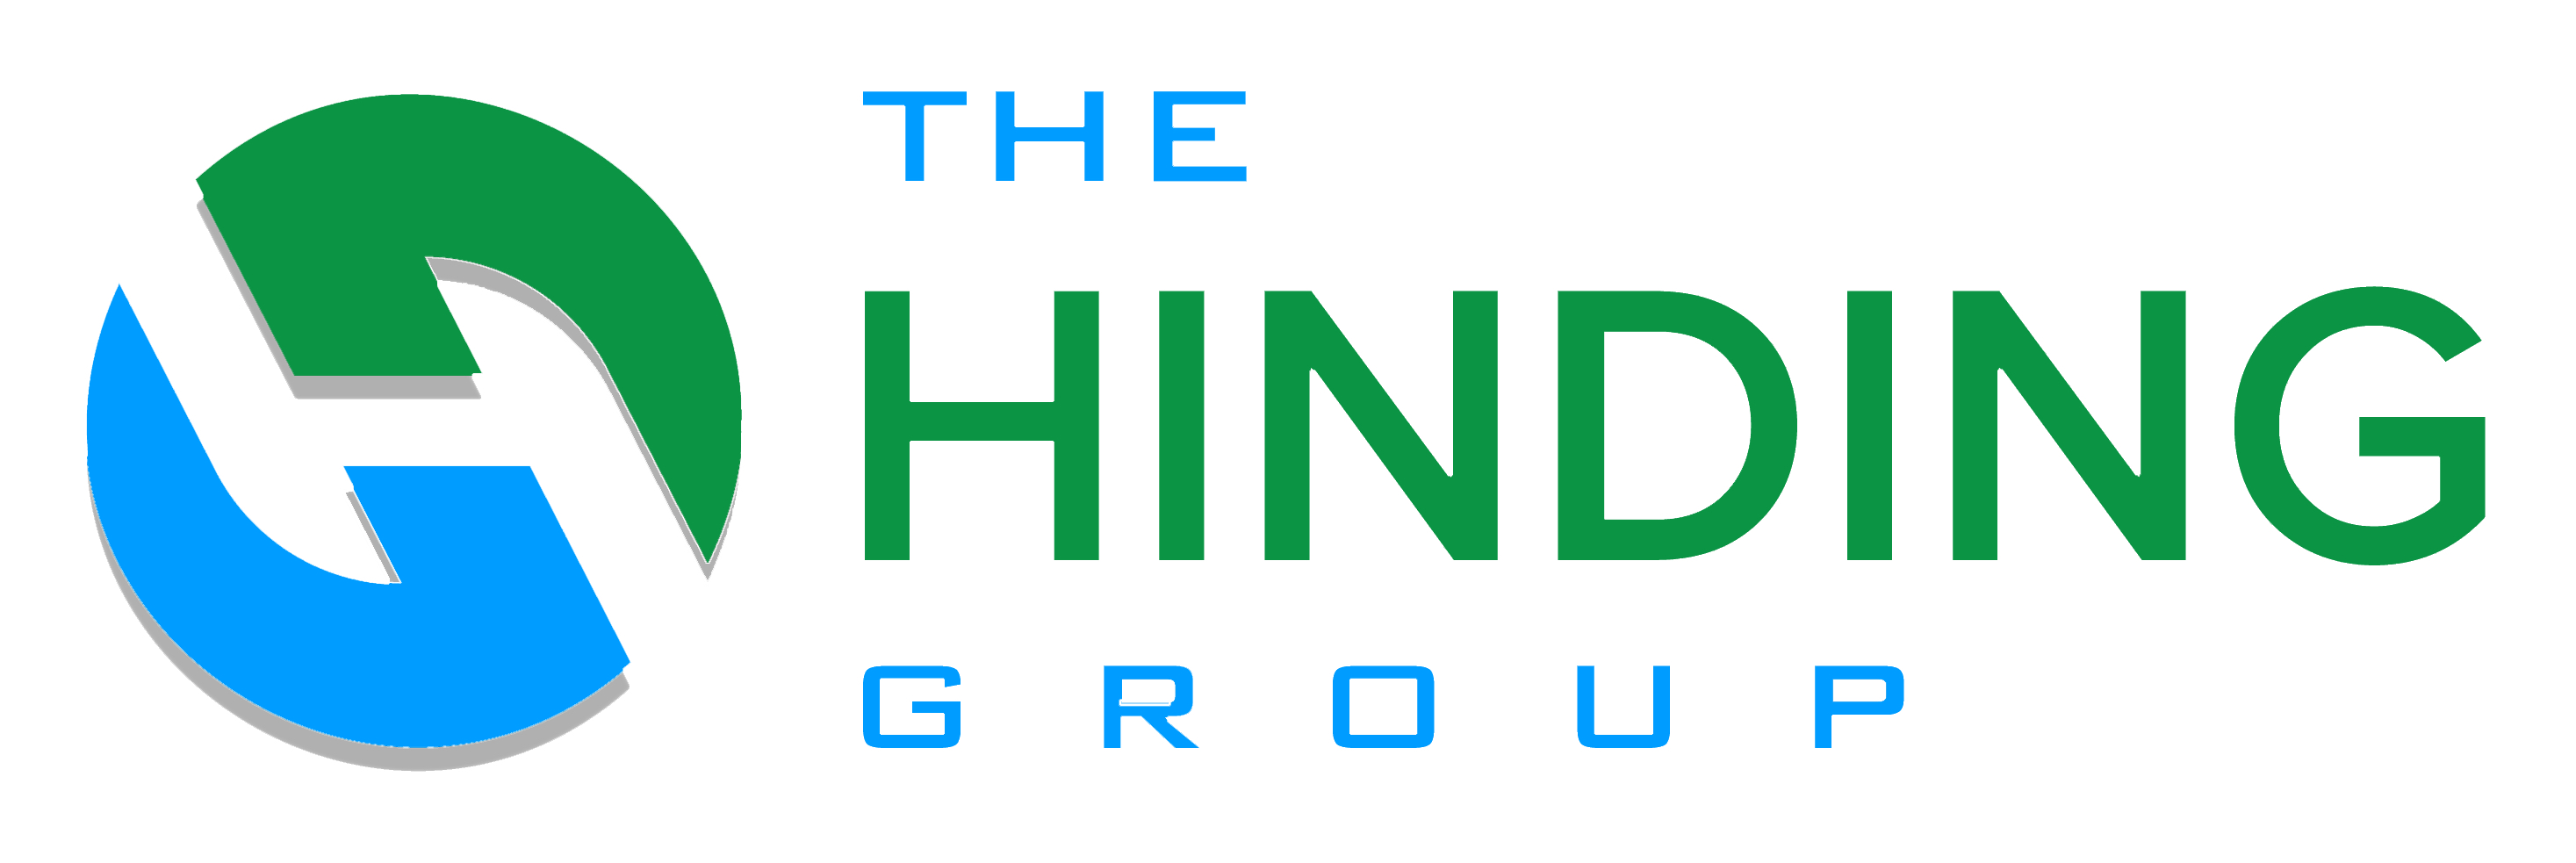 The Hinding Group